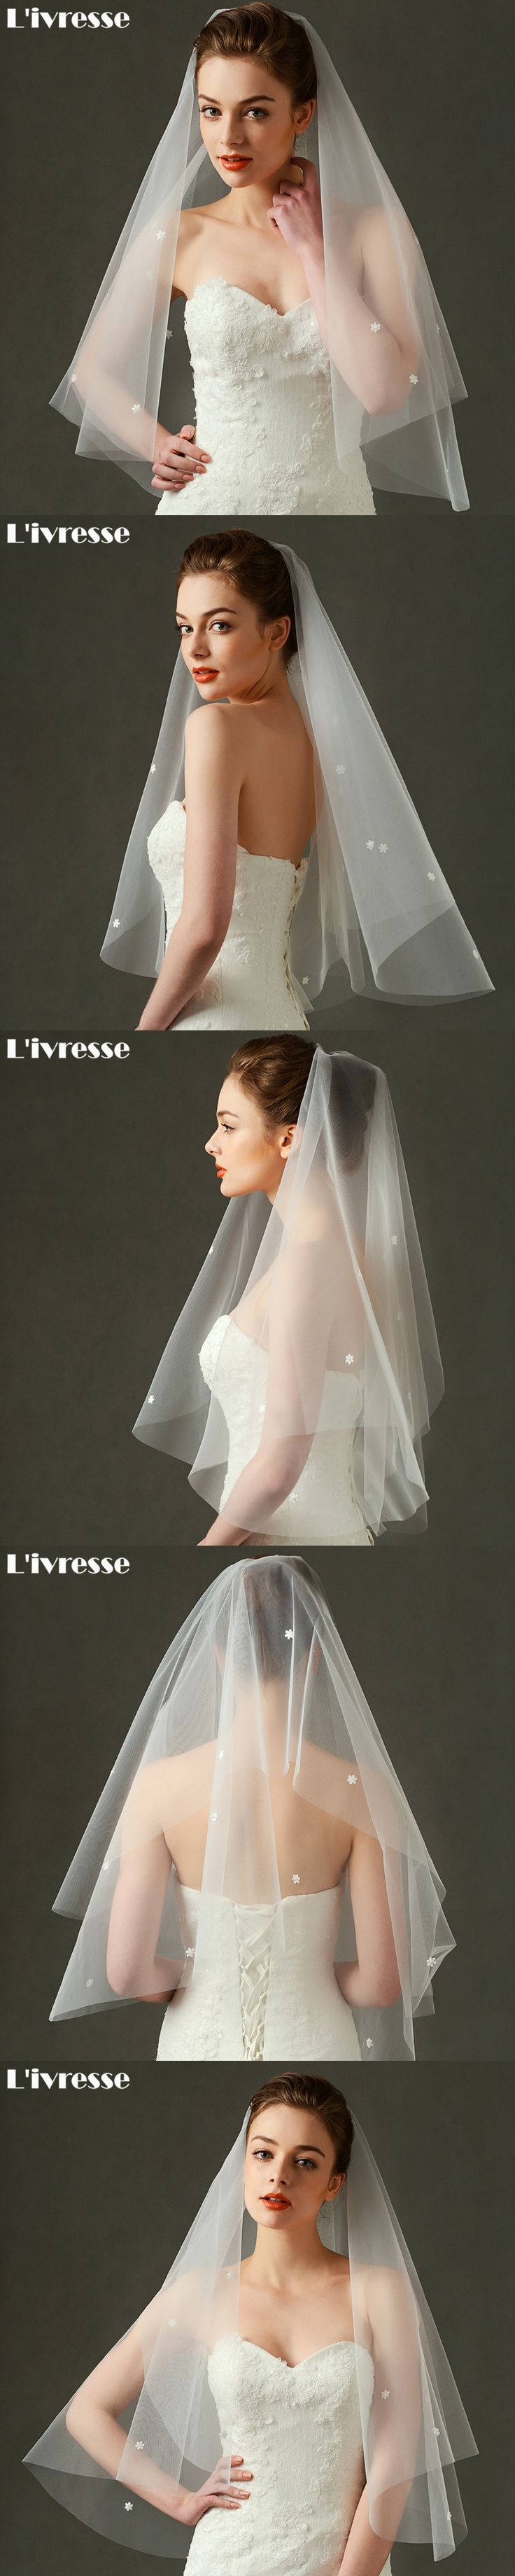 Cheap In Stock Ivory Wedding Veil Short 2017 Cut Edge Bridal Veils With Appliques Wedding Accessories Velo De Novia